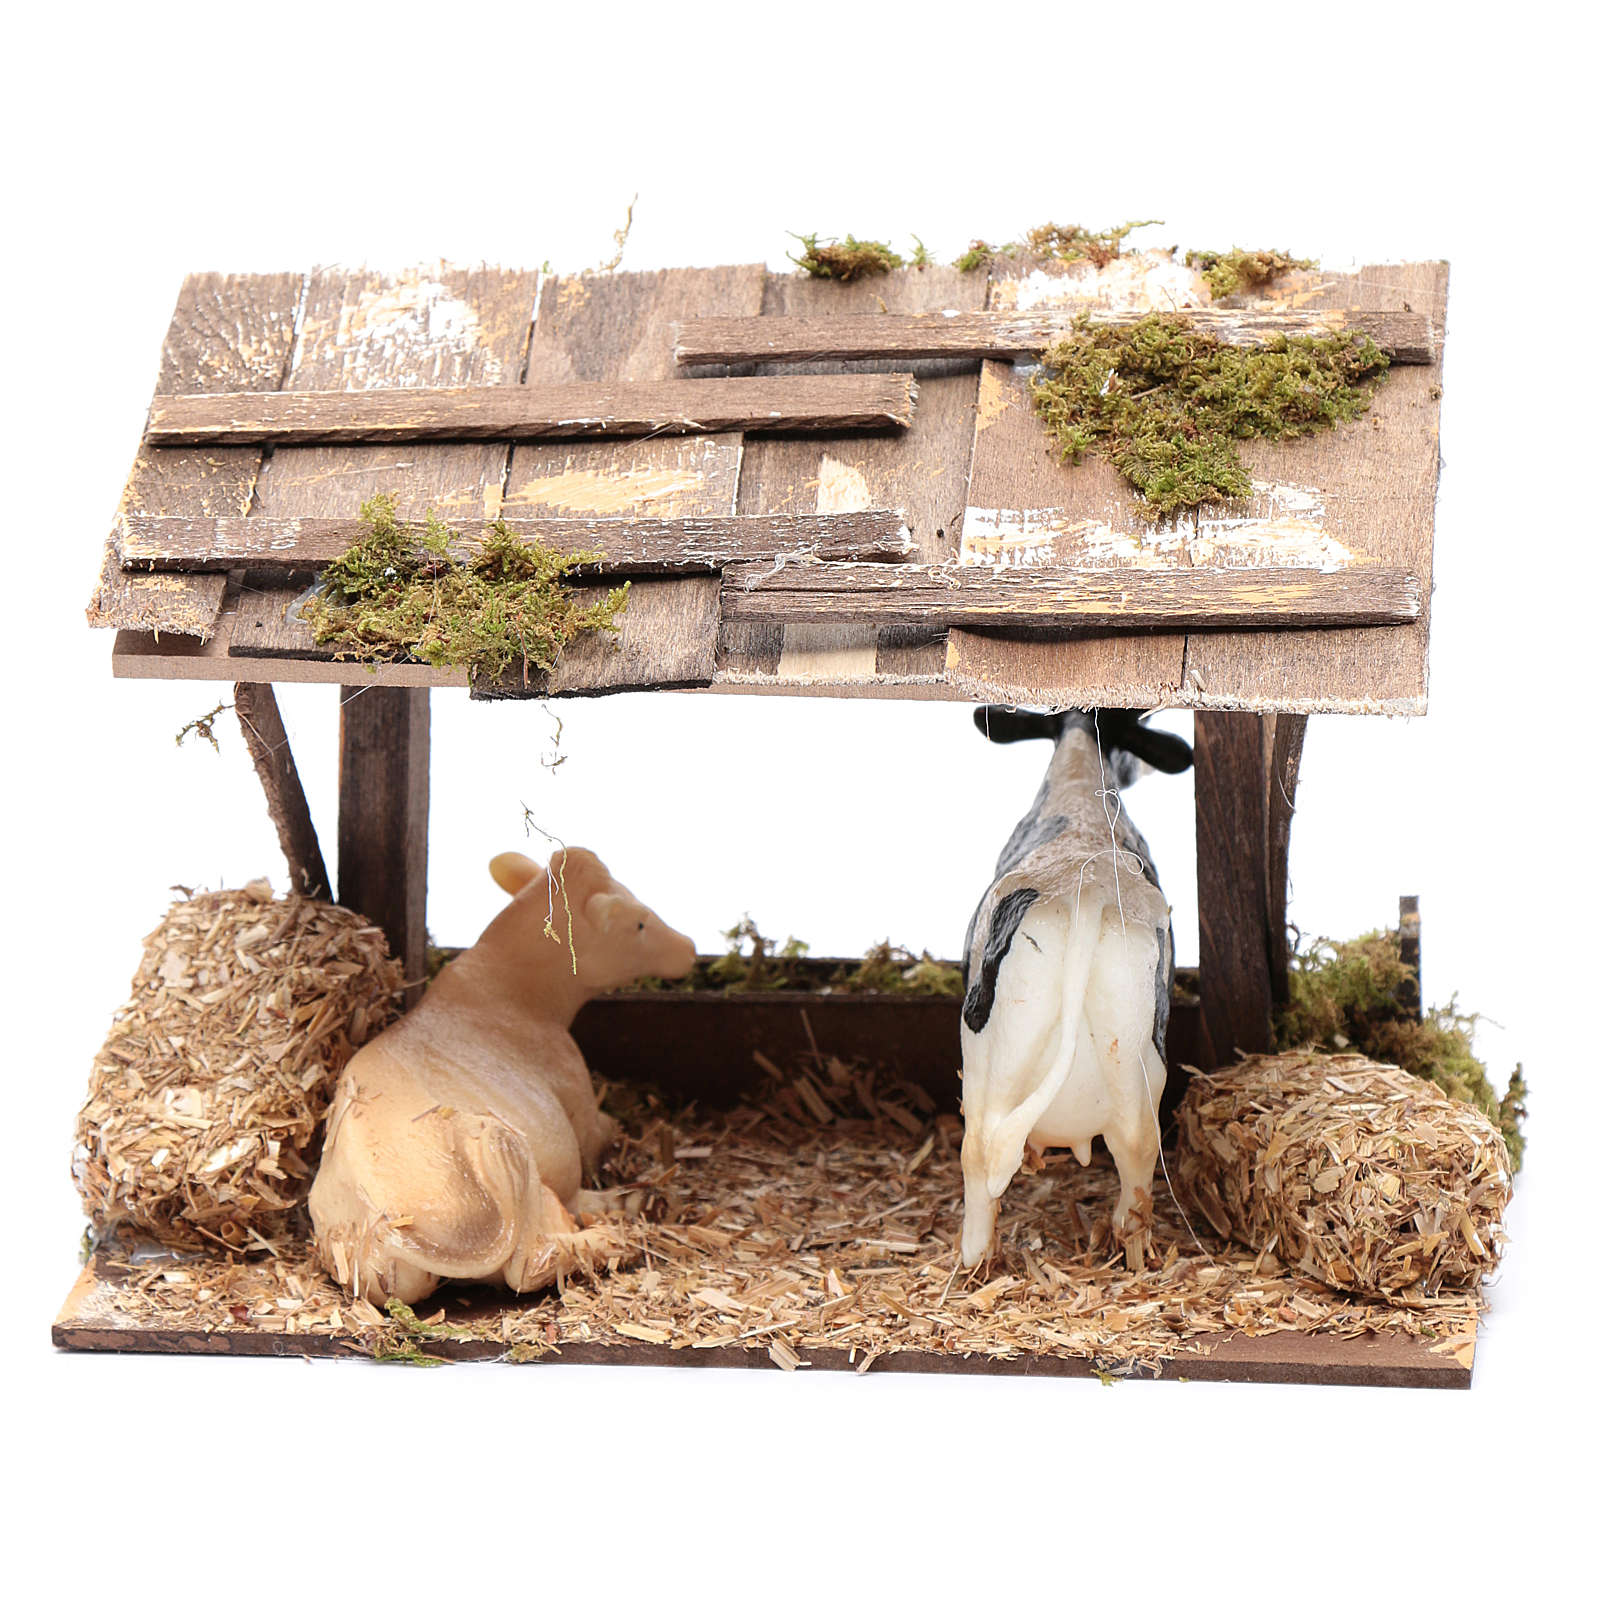 Cows in roofed barn for nativity scene 3